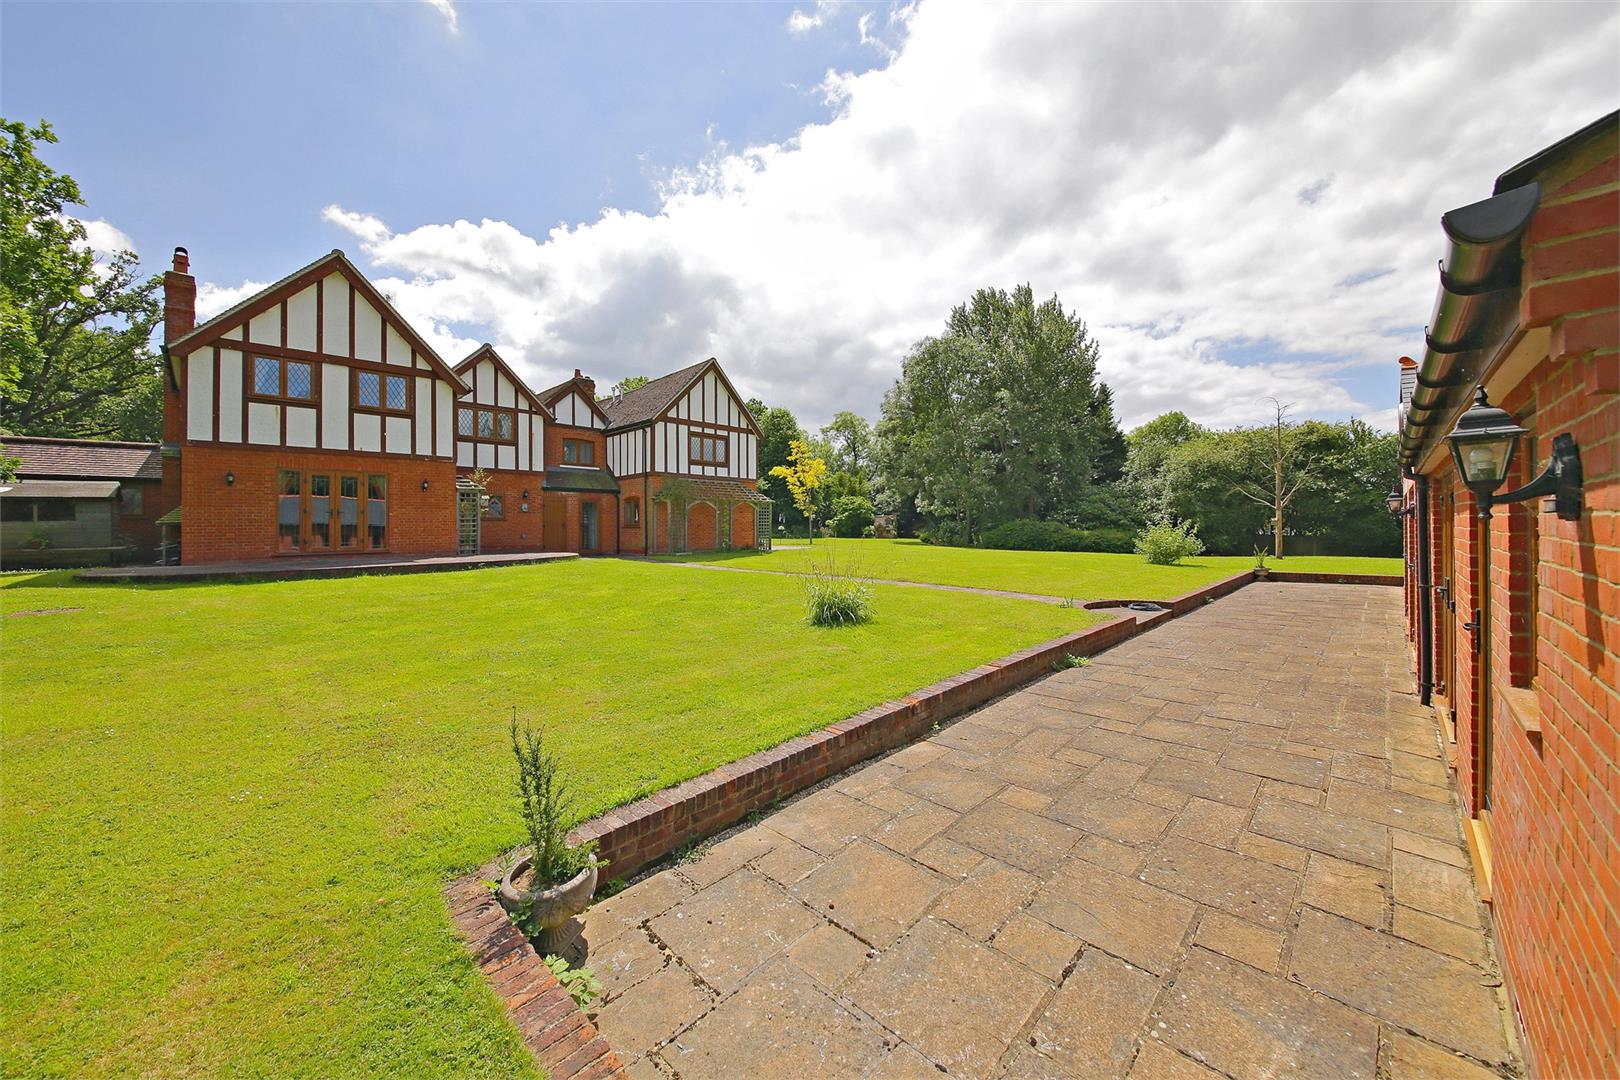 6 bed to rent in Elstree - (Property Image 10)